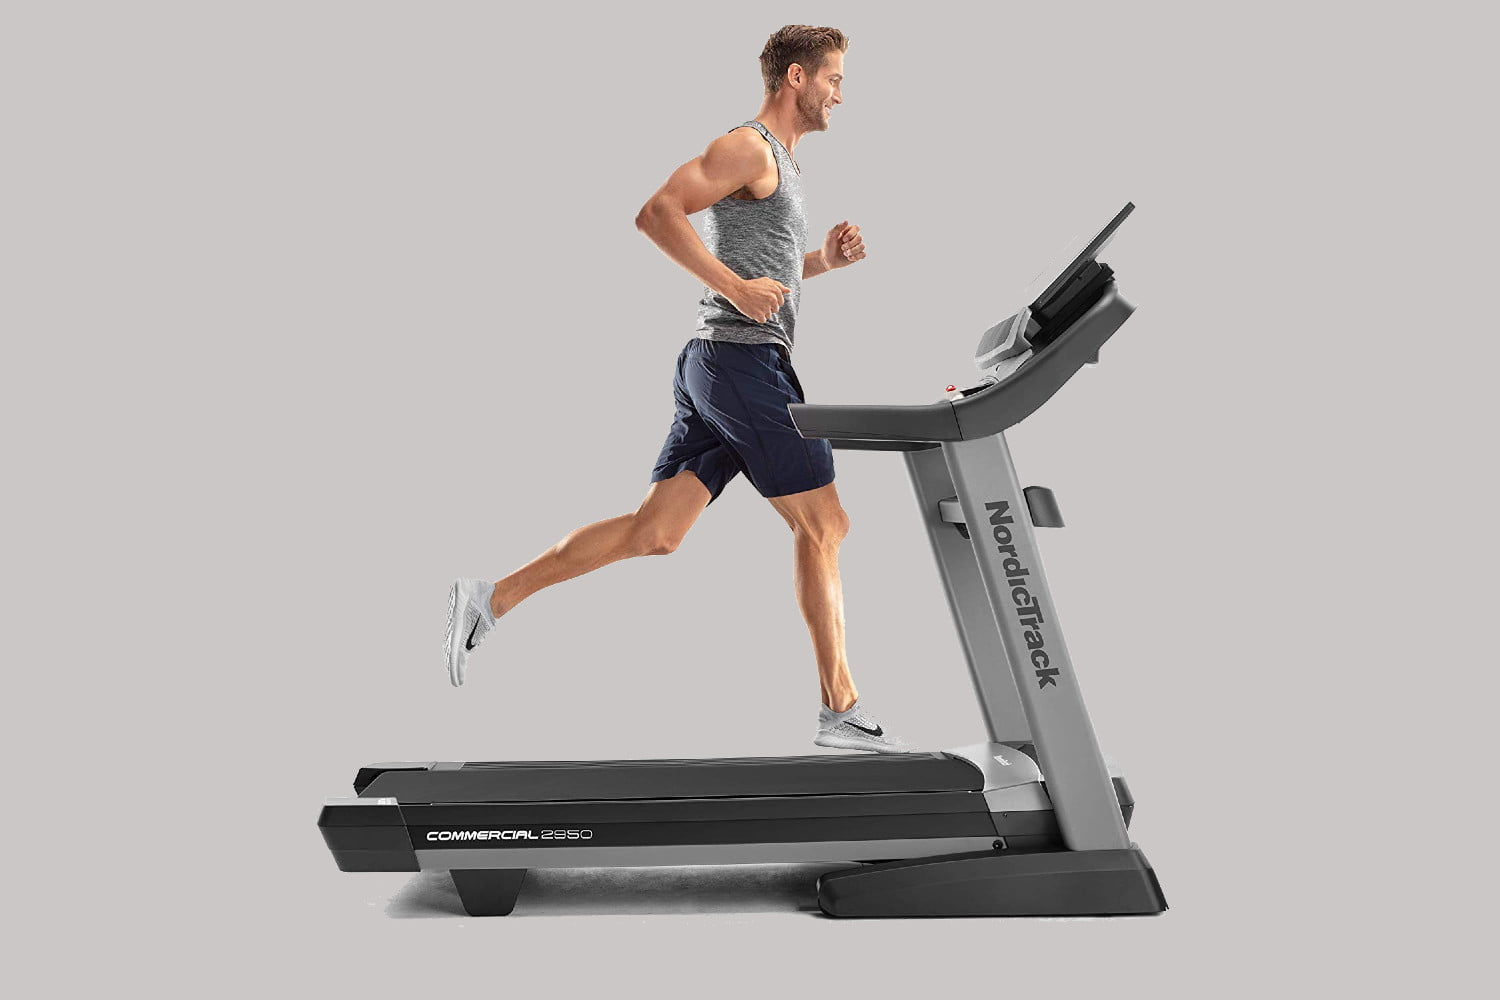 Amazon gives huge one-day discounts on NordicTrack treadmills